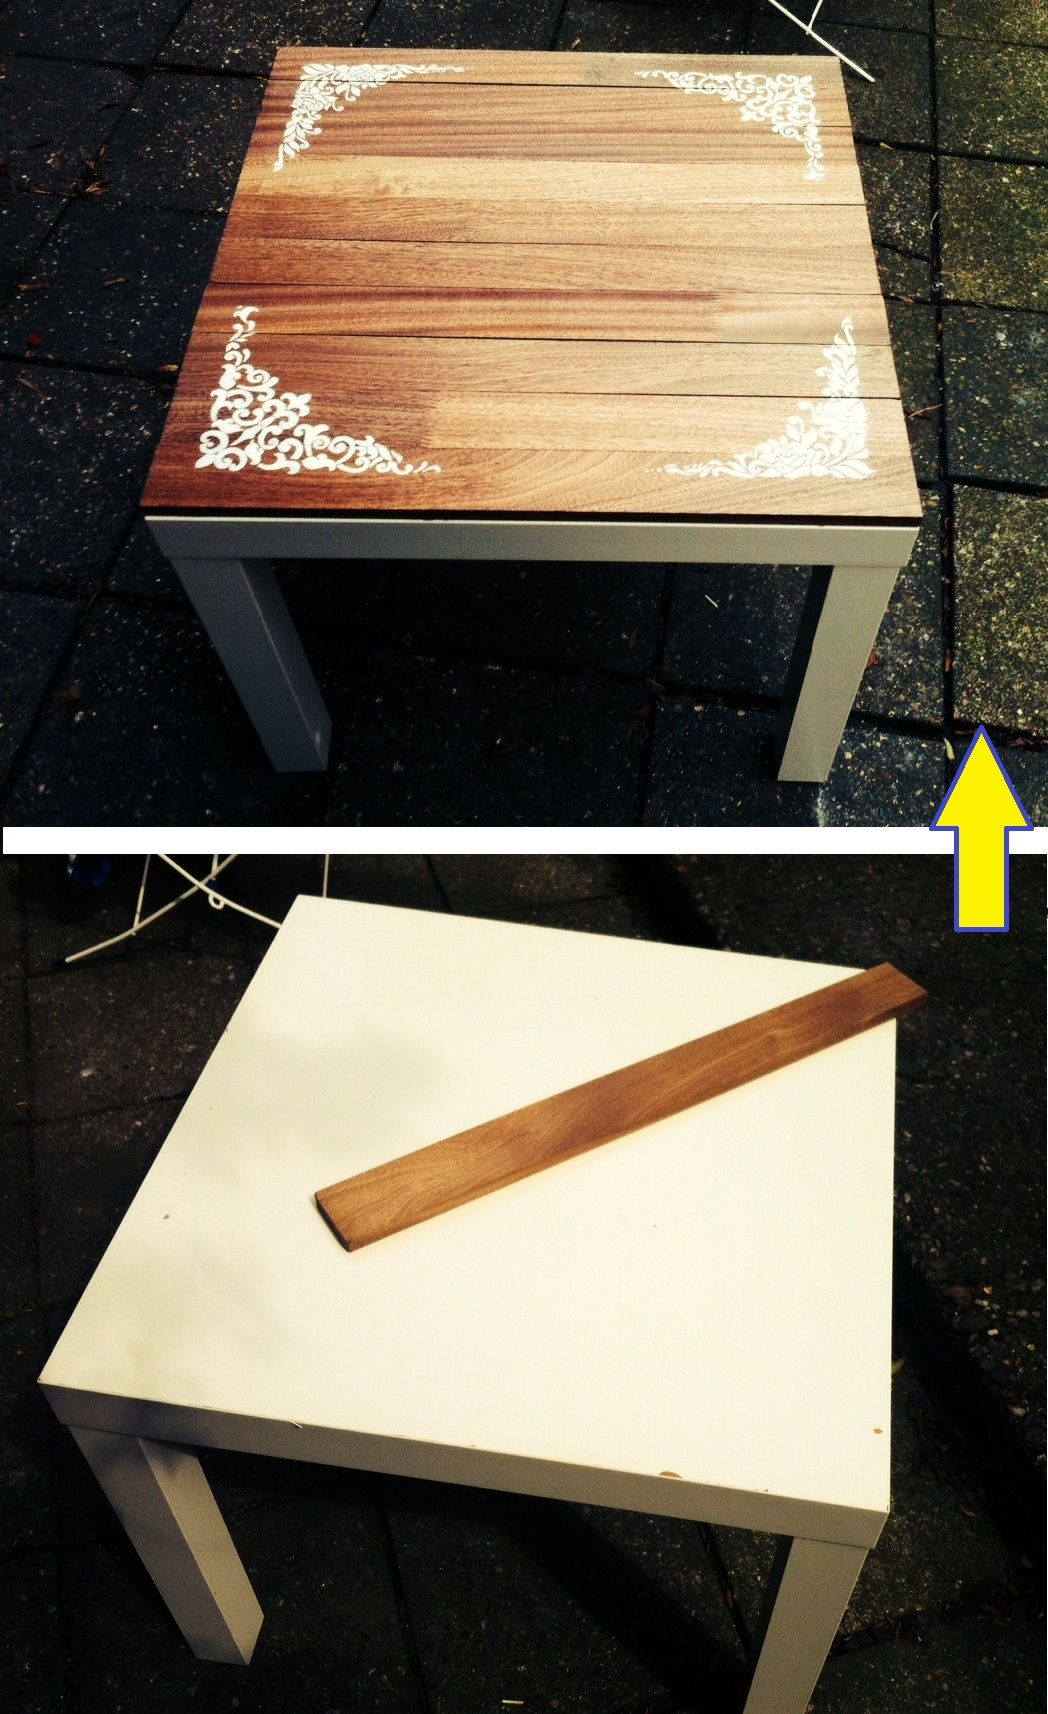 My First Ikea Hack A Simple Lack Coffee Table Upgraded Inspiration Taken From Http Www Ikeahackers Net 2013 0 Ikea Lack Table Lack Table Hack Ikea Hack